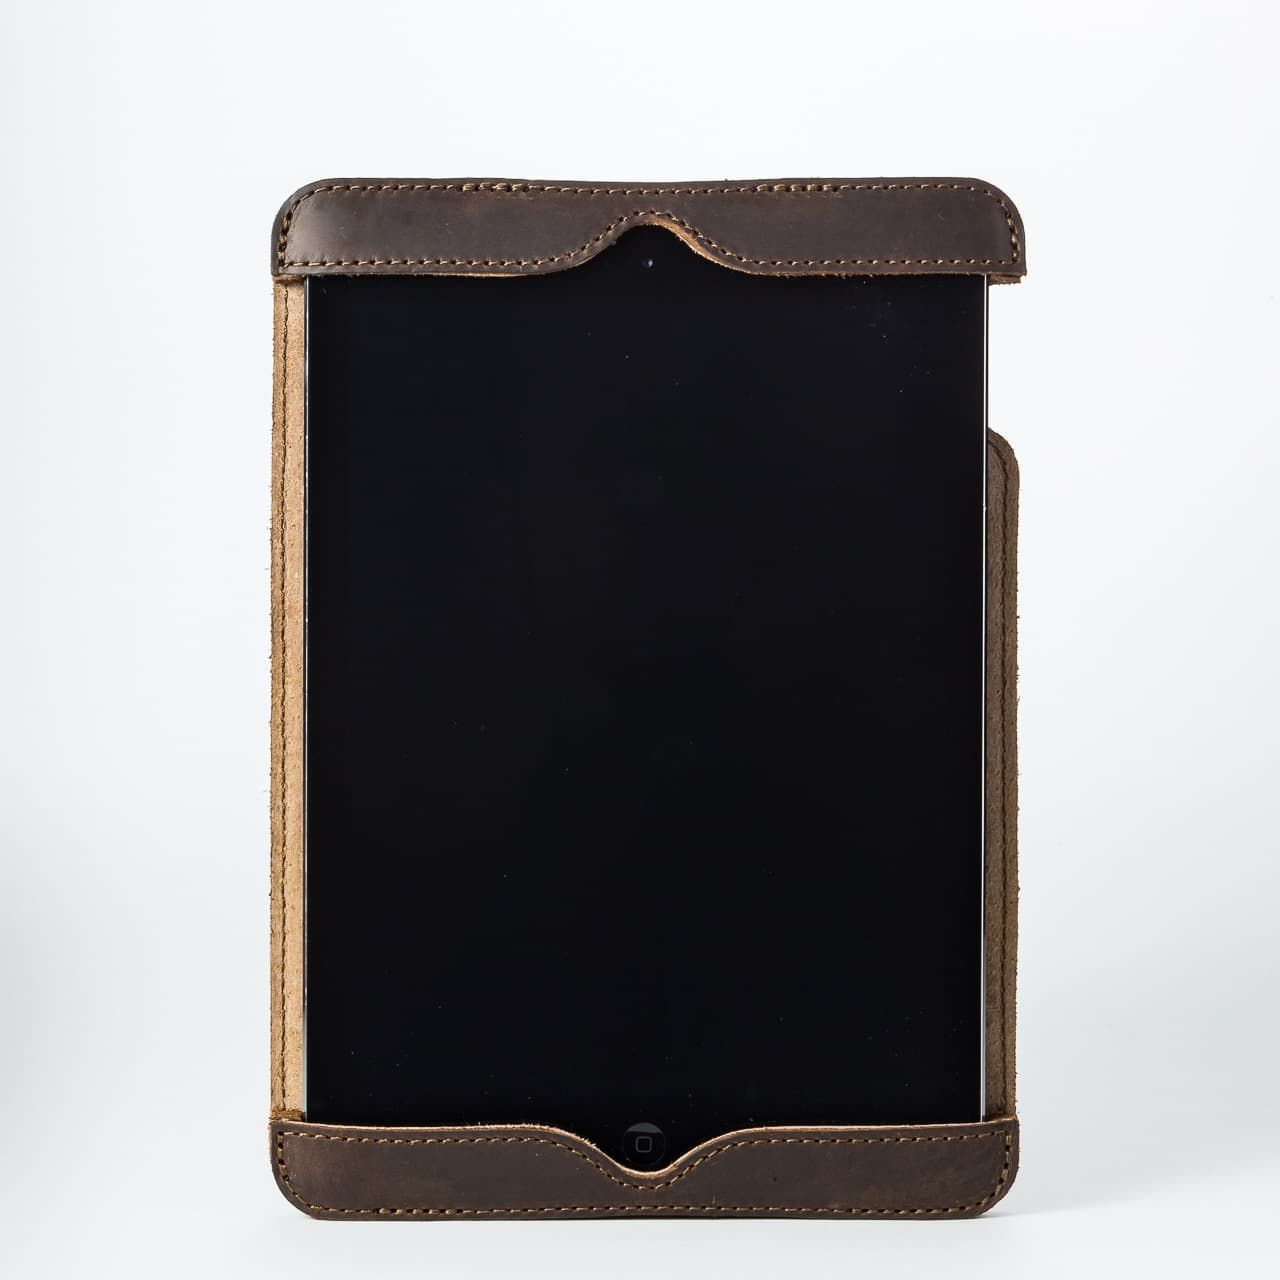 Simple iPad Case in color Dark Coffee Brown front with an iPad